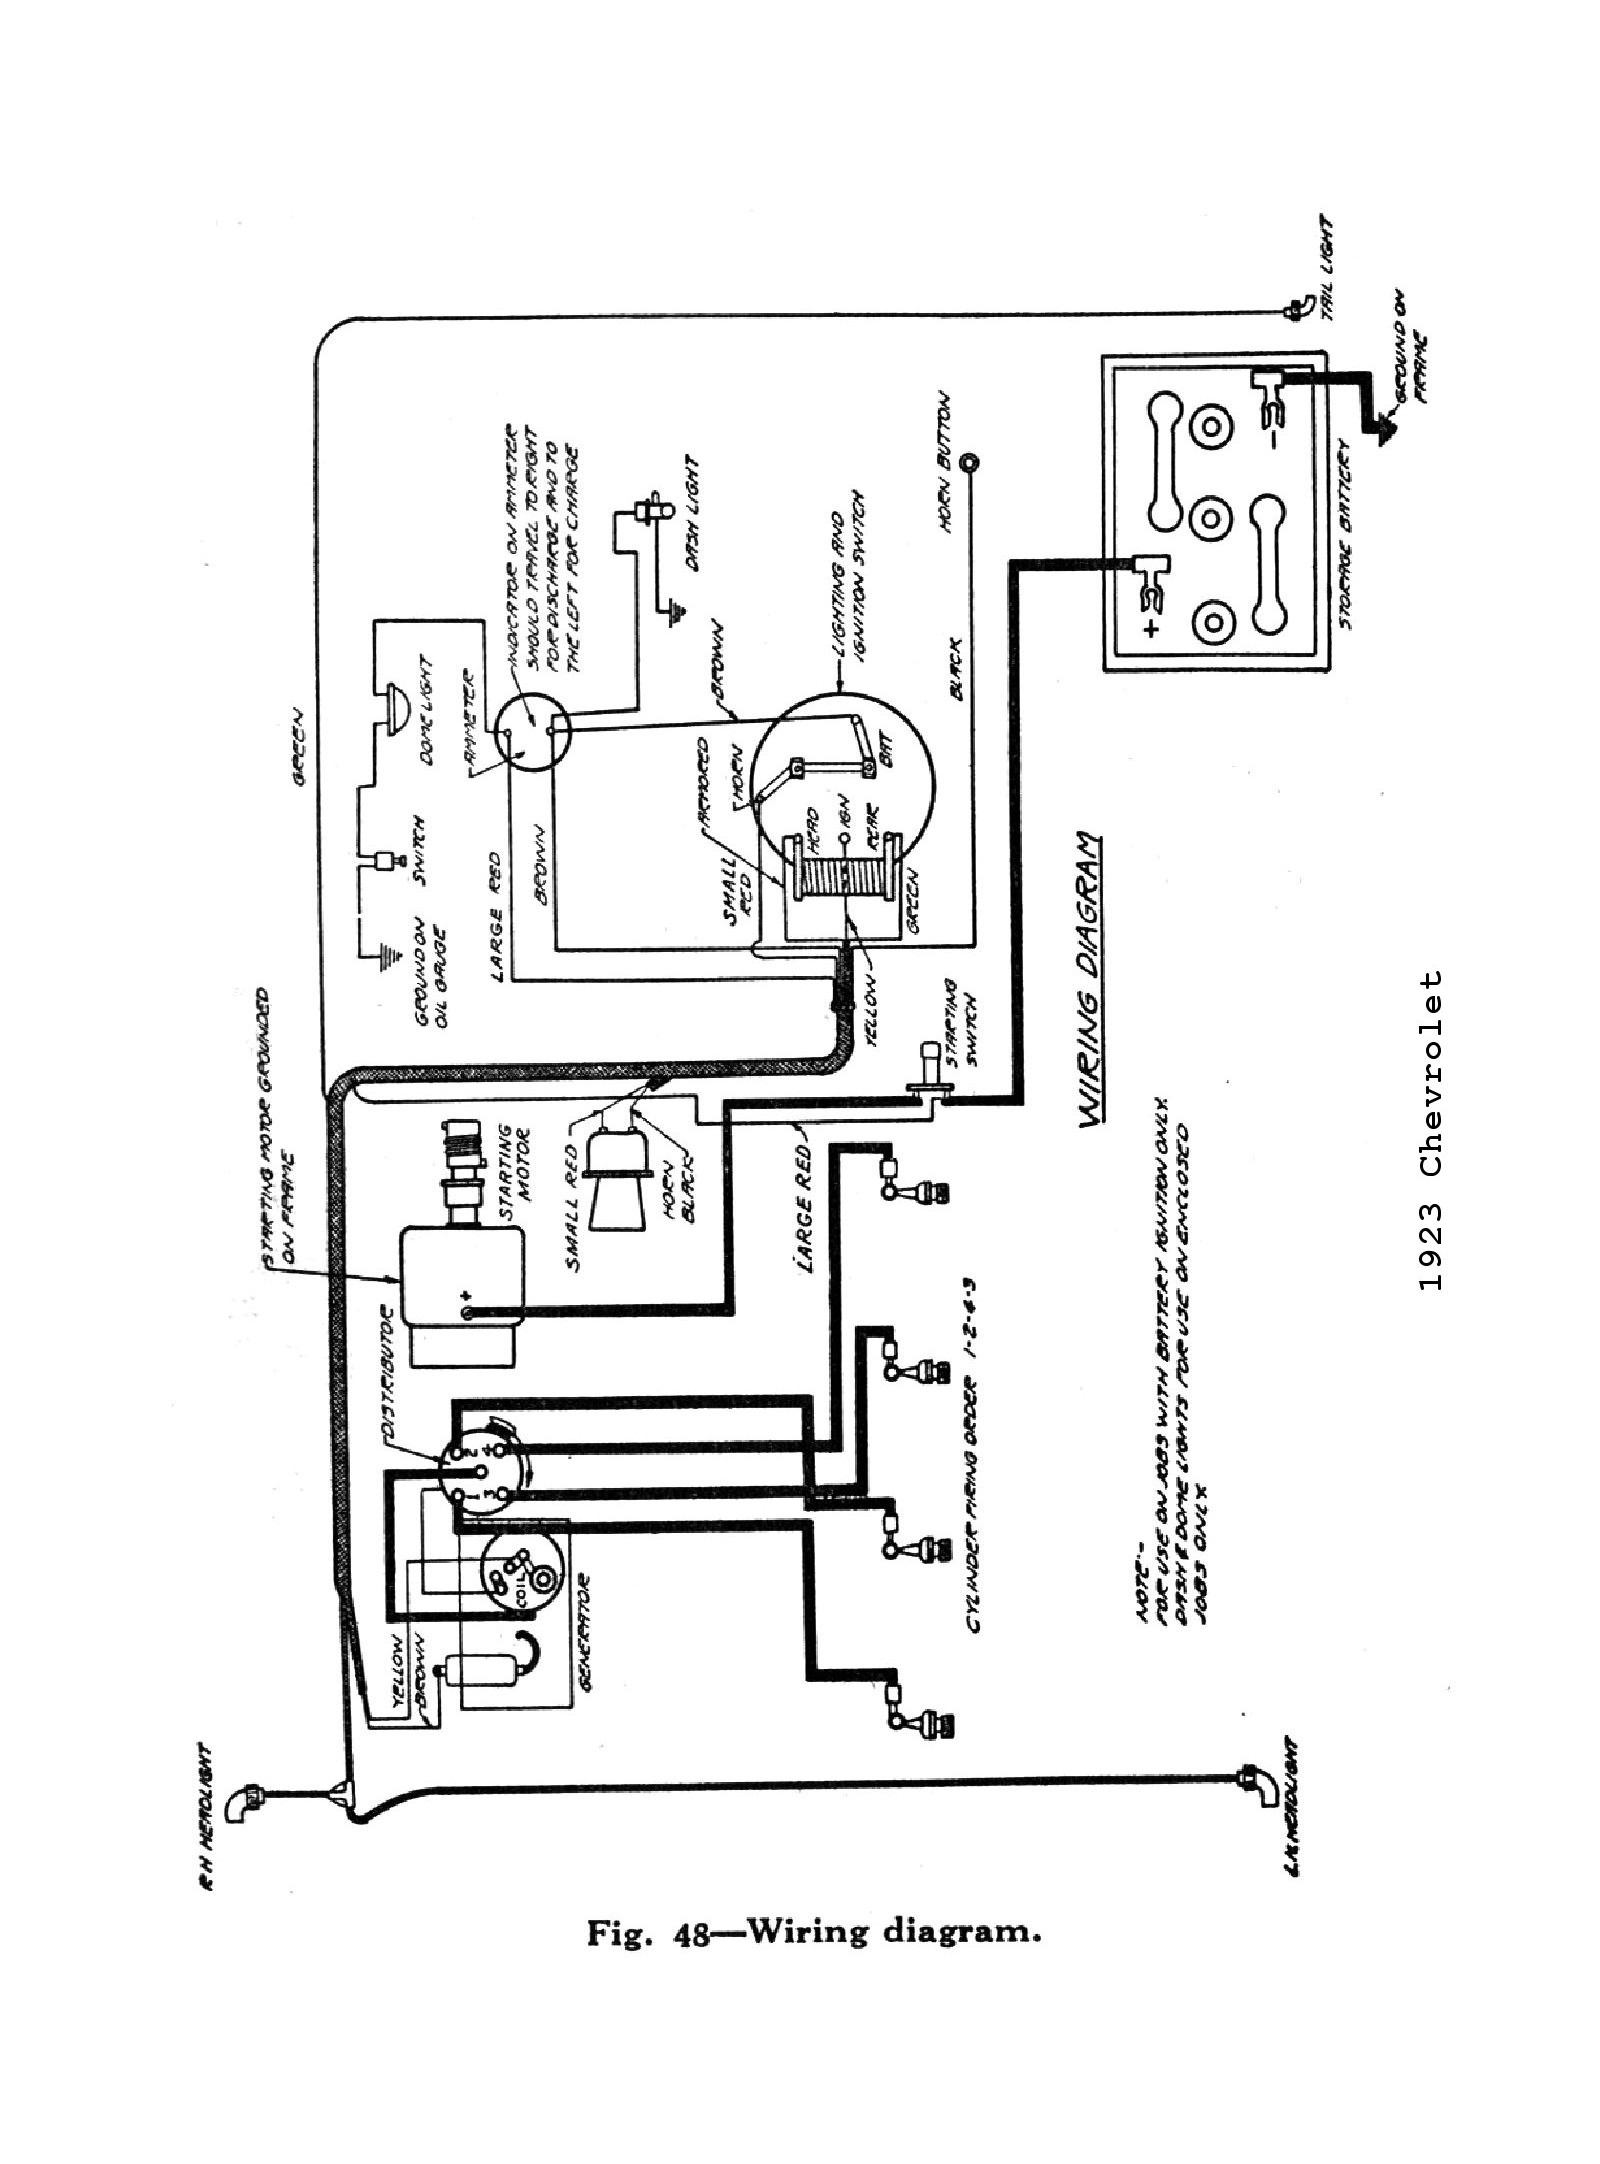 72 Impala Wiring Diagram on chevy 1959 chevrolet impala